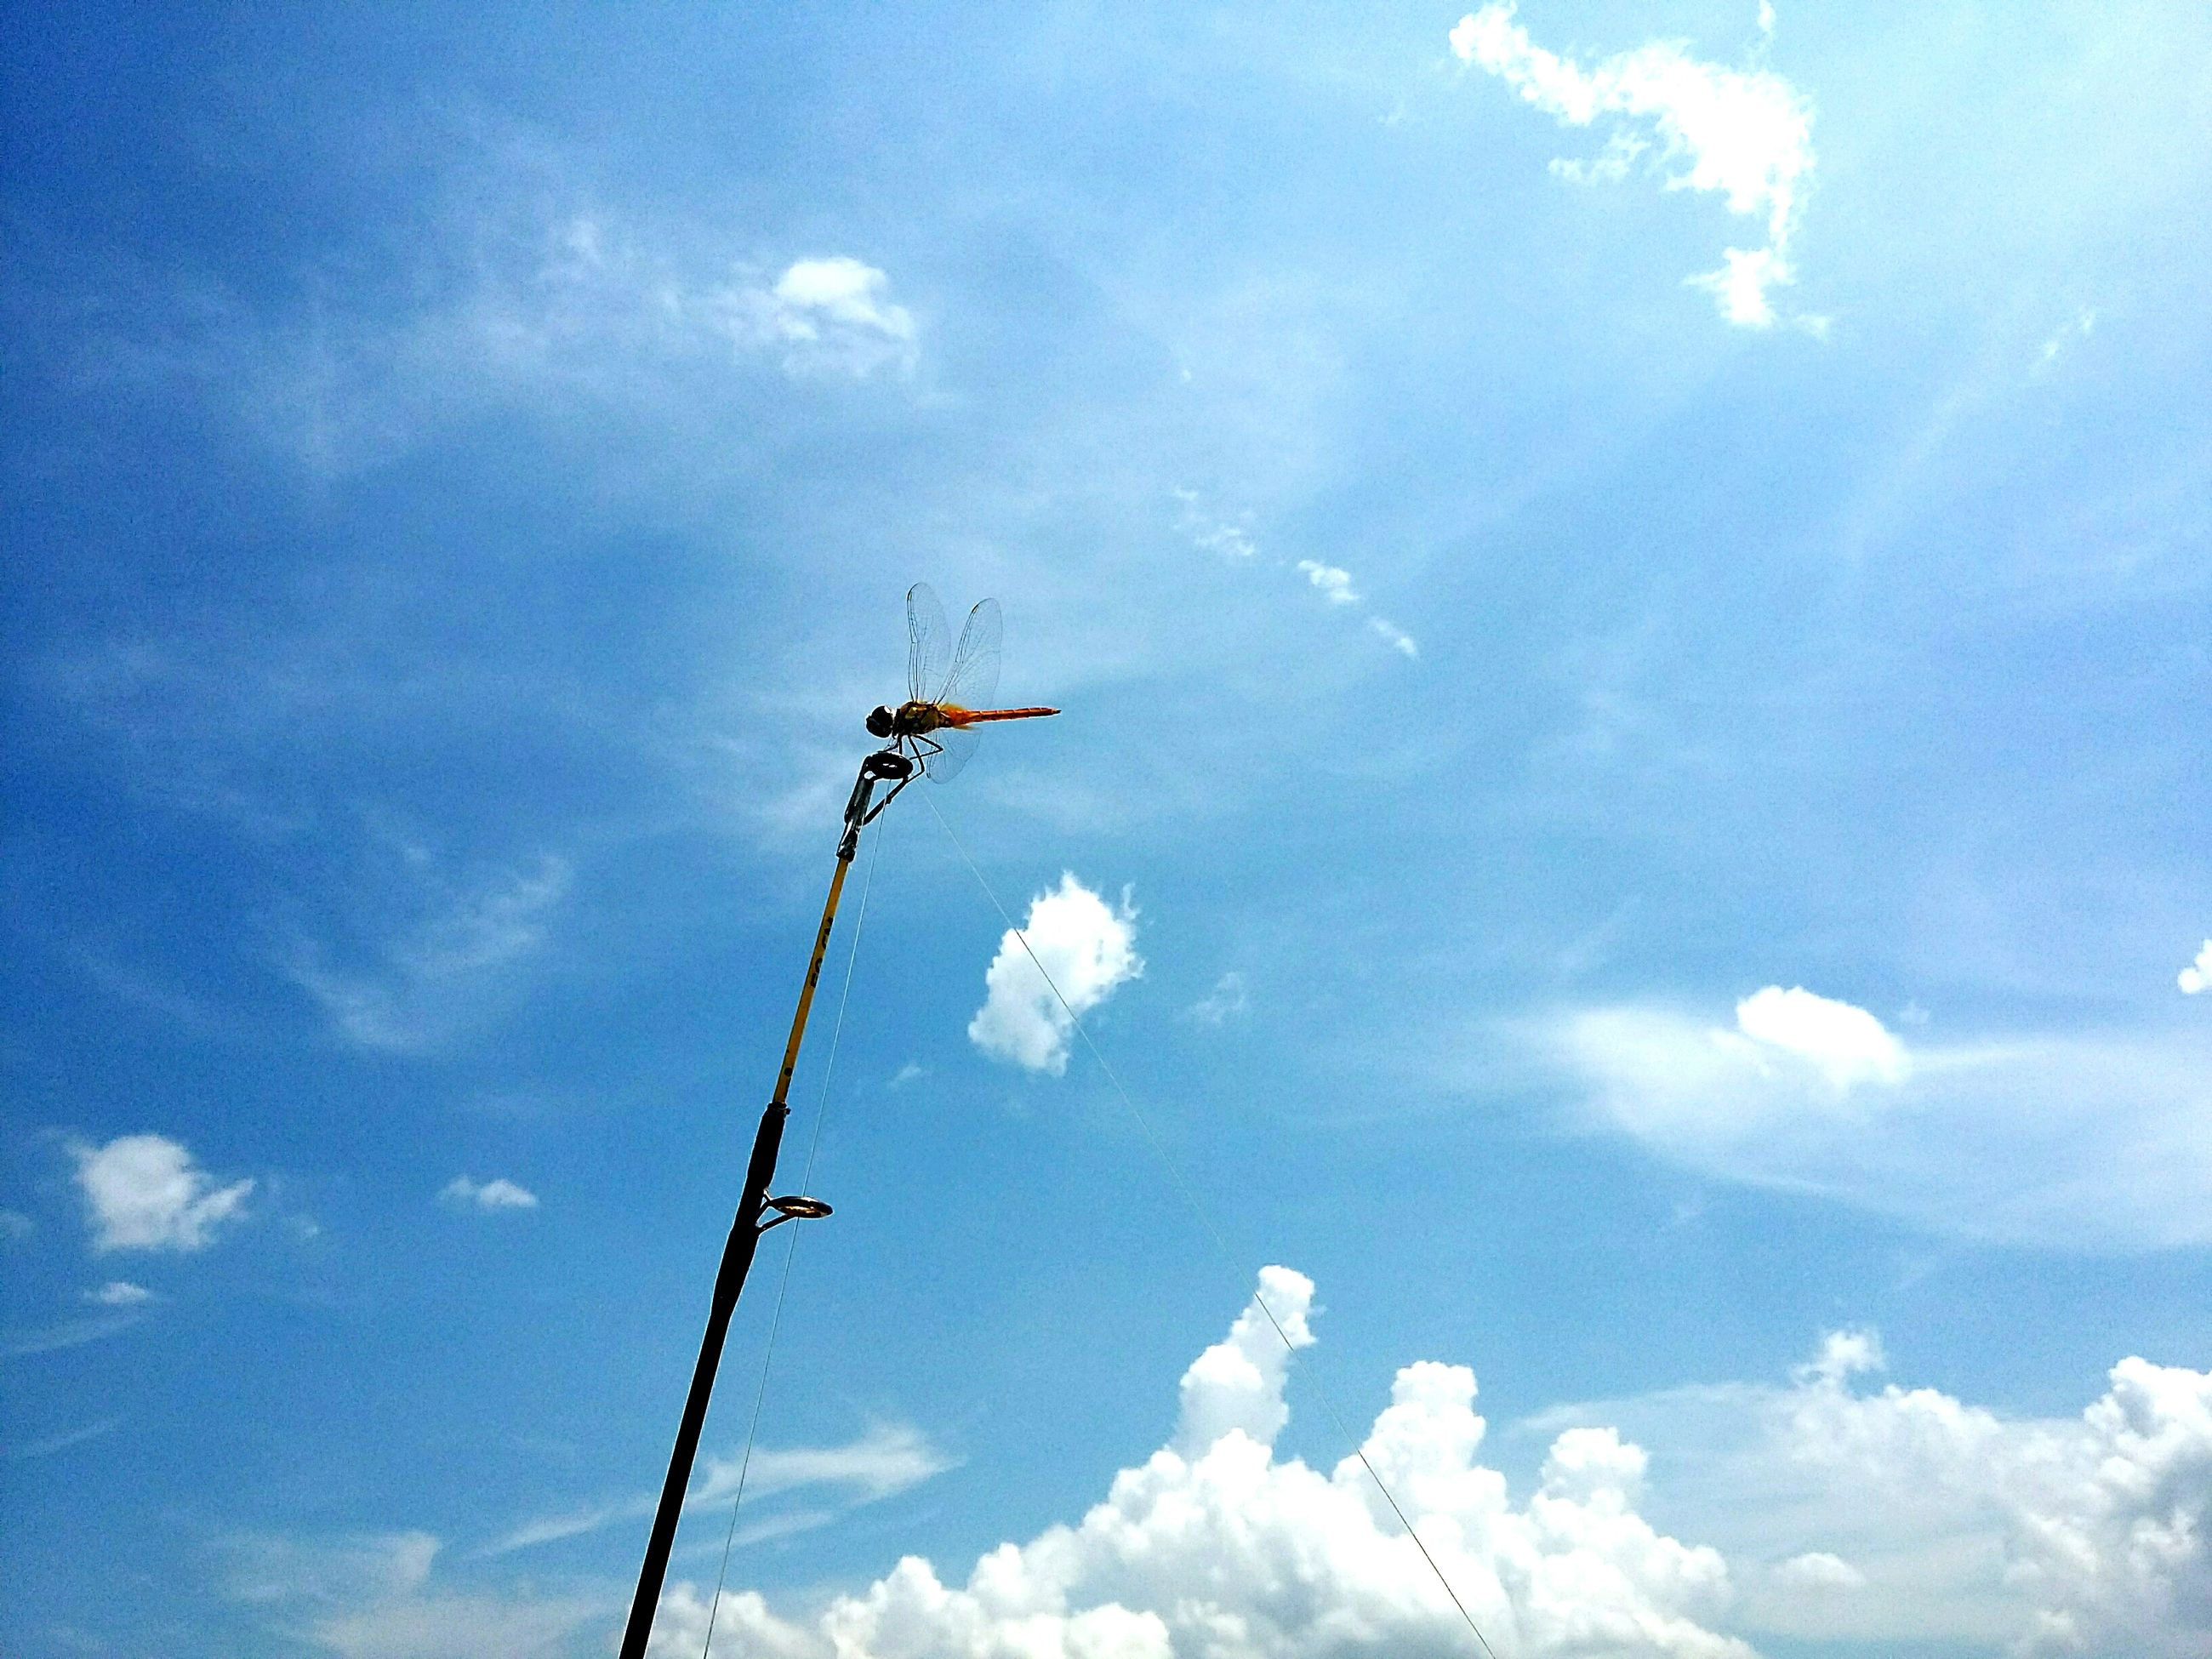 low angle view, sky, cloud - sky, blue, cloudy, cloud, transportation, cable, mode of transport, power line, day, flying, outdoors, no people, technology, electricity, nature, mid-air, air vehicle, on the move